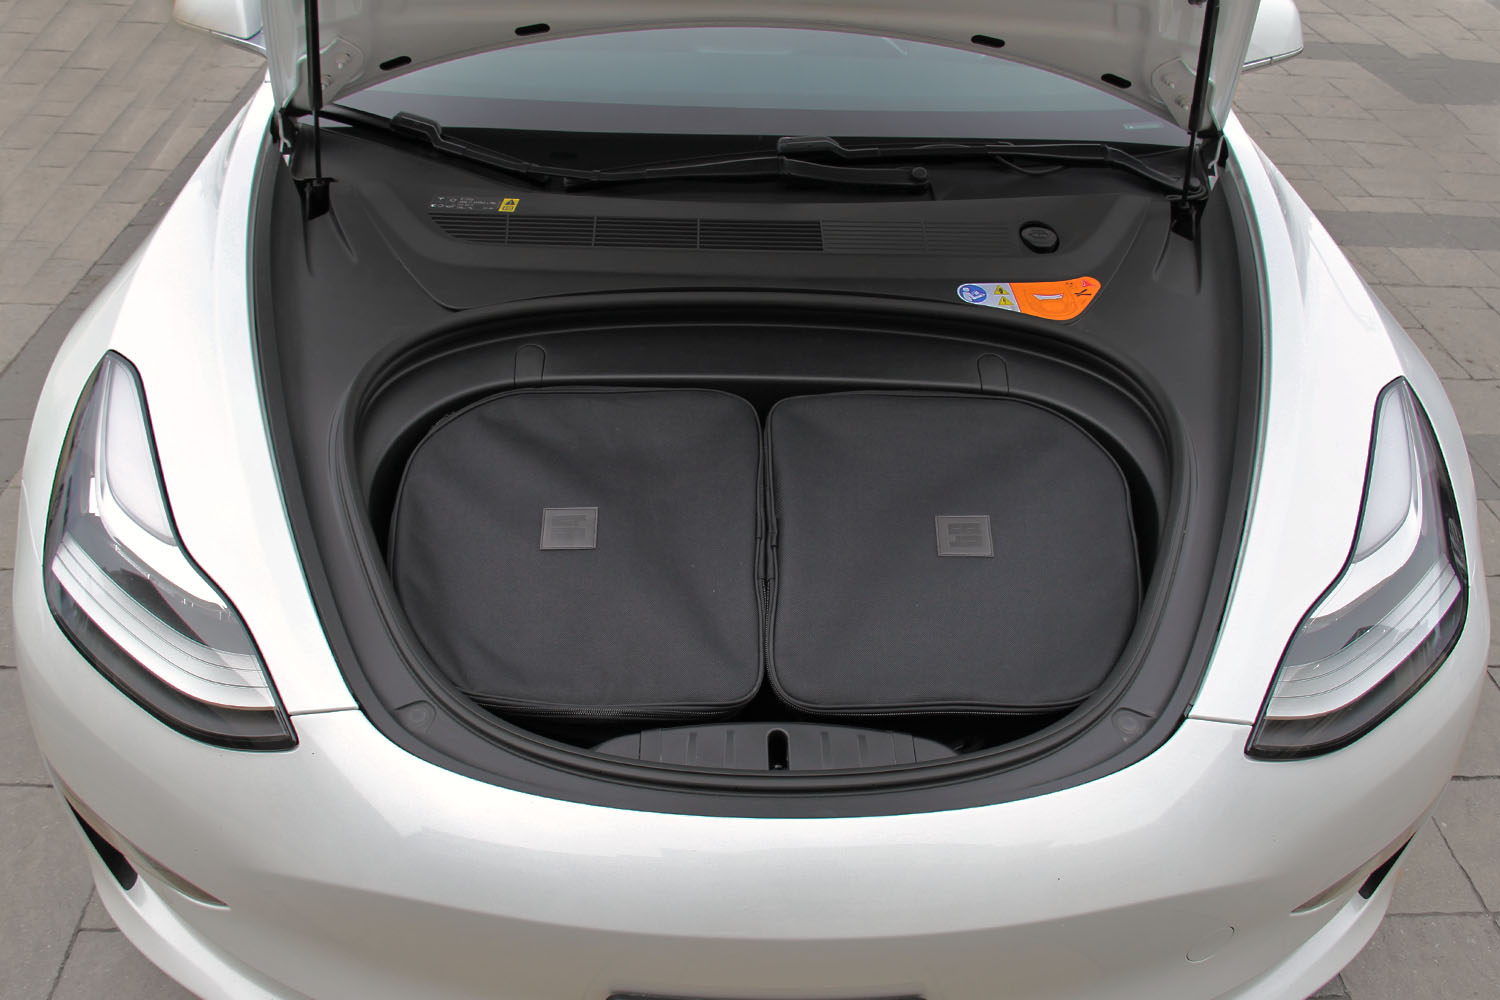 Best Model 3 luggage bags